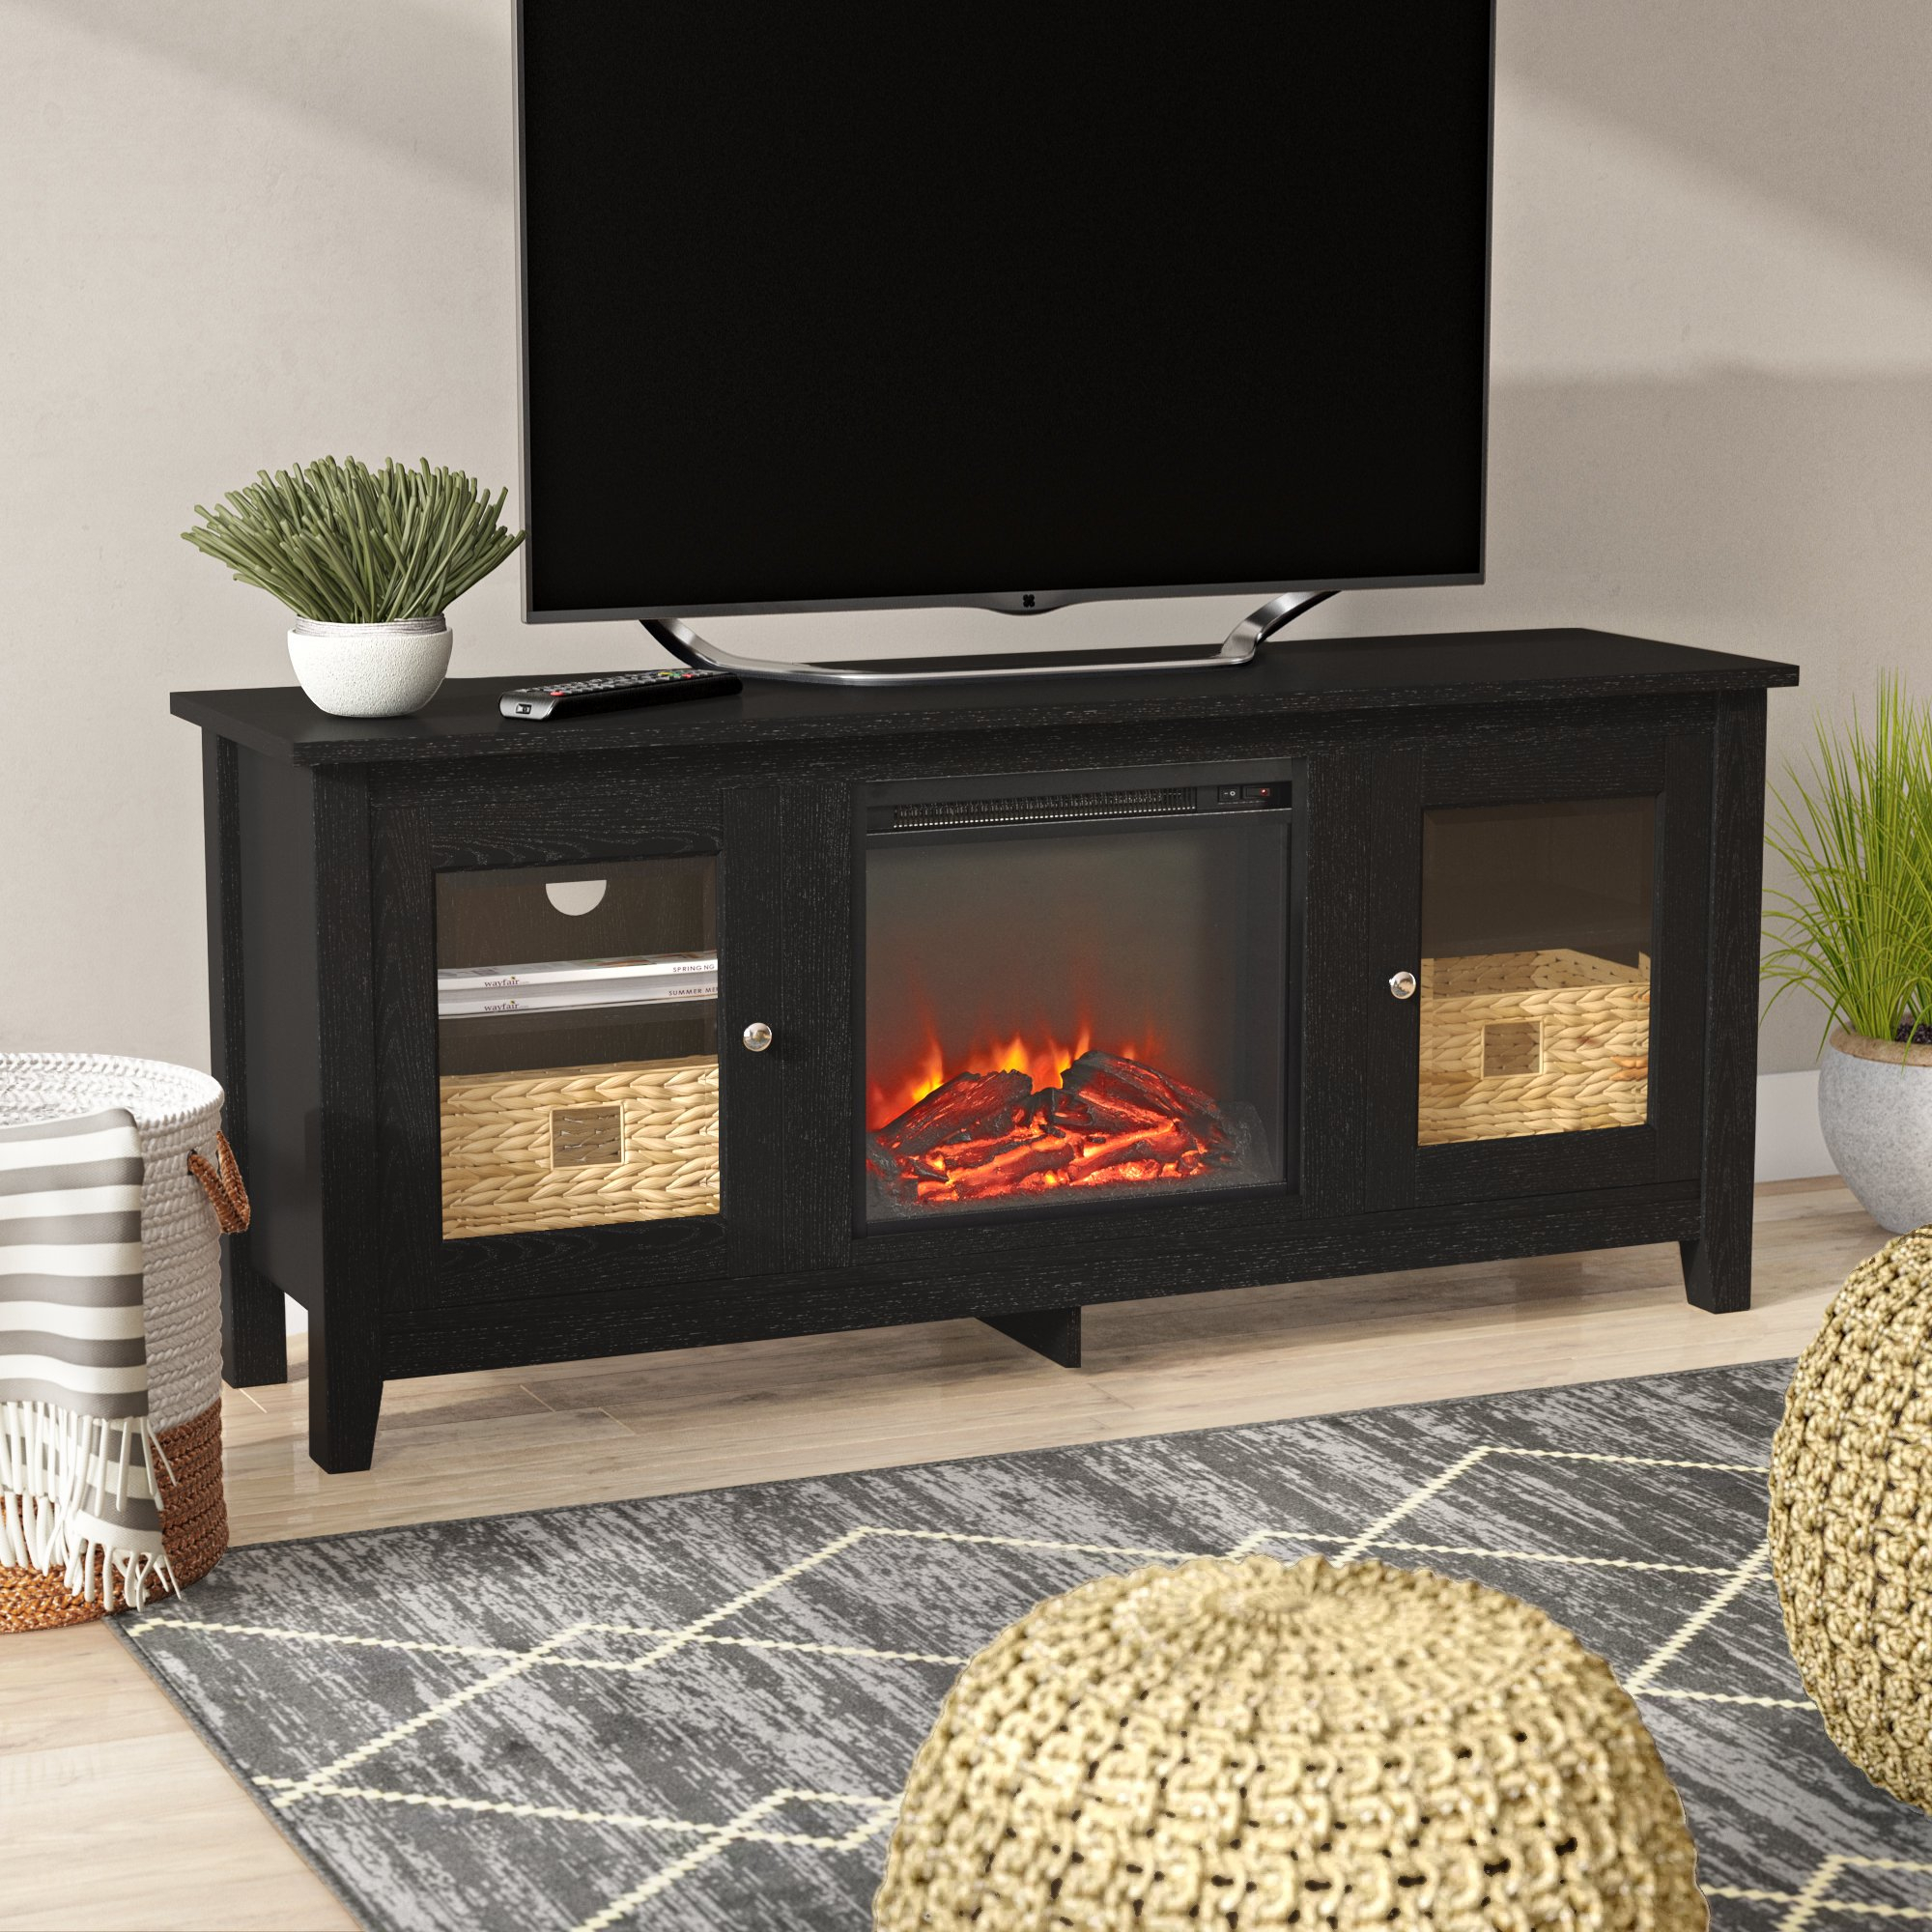 Fireplace Tv Stands & Entertainment Centers You'll Love | Wayfair (View 7 of 30)